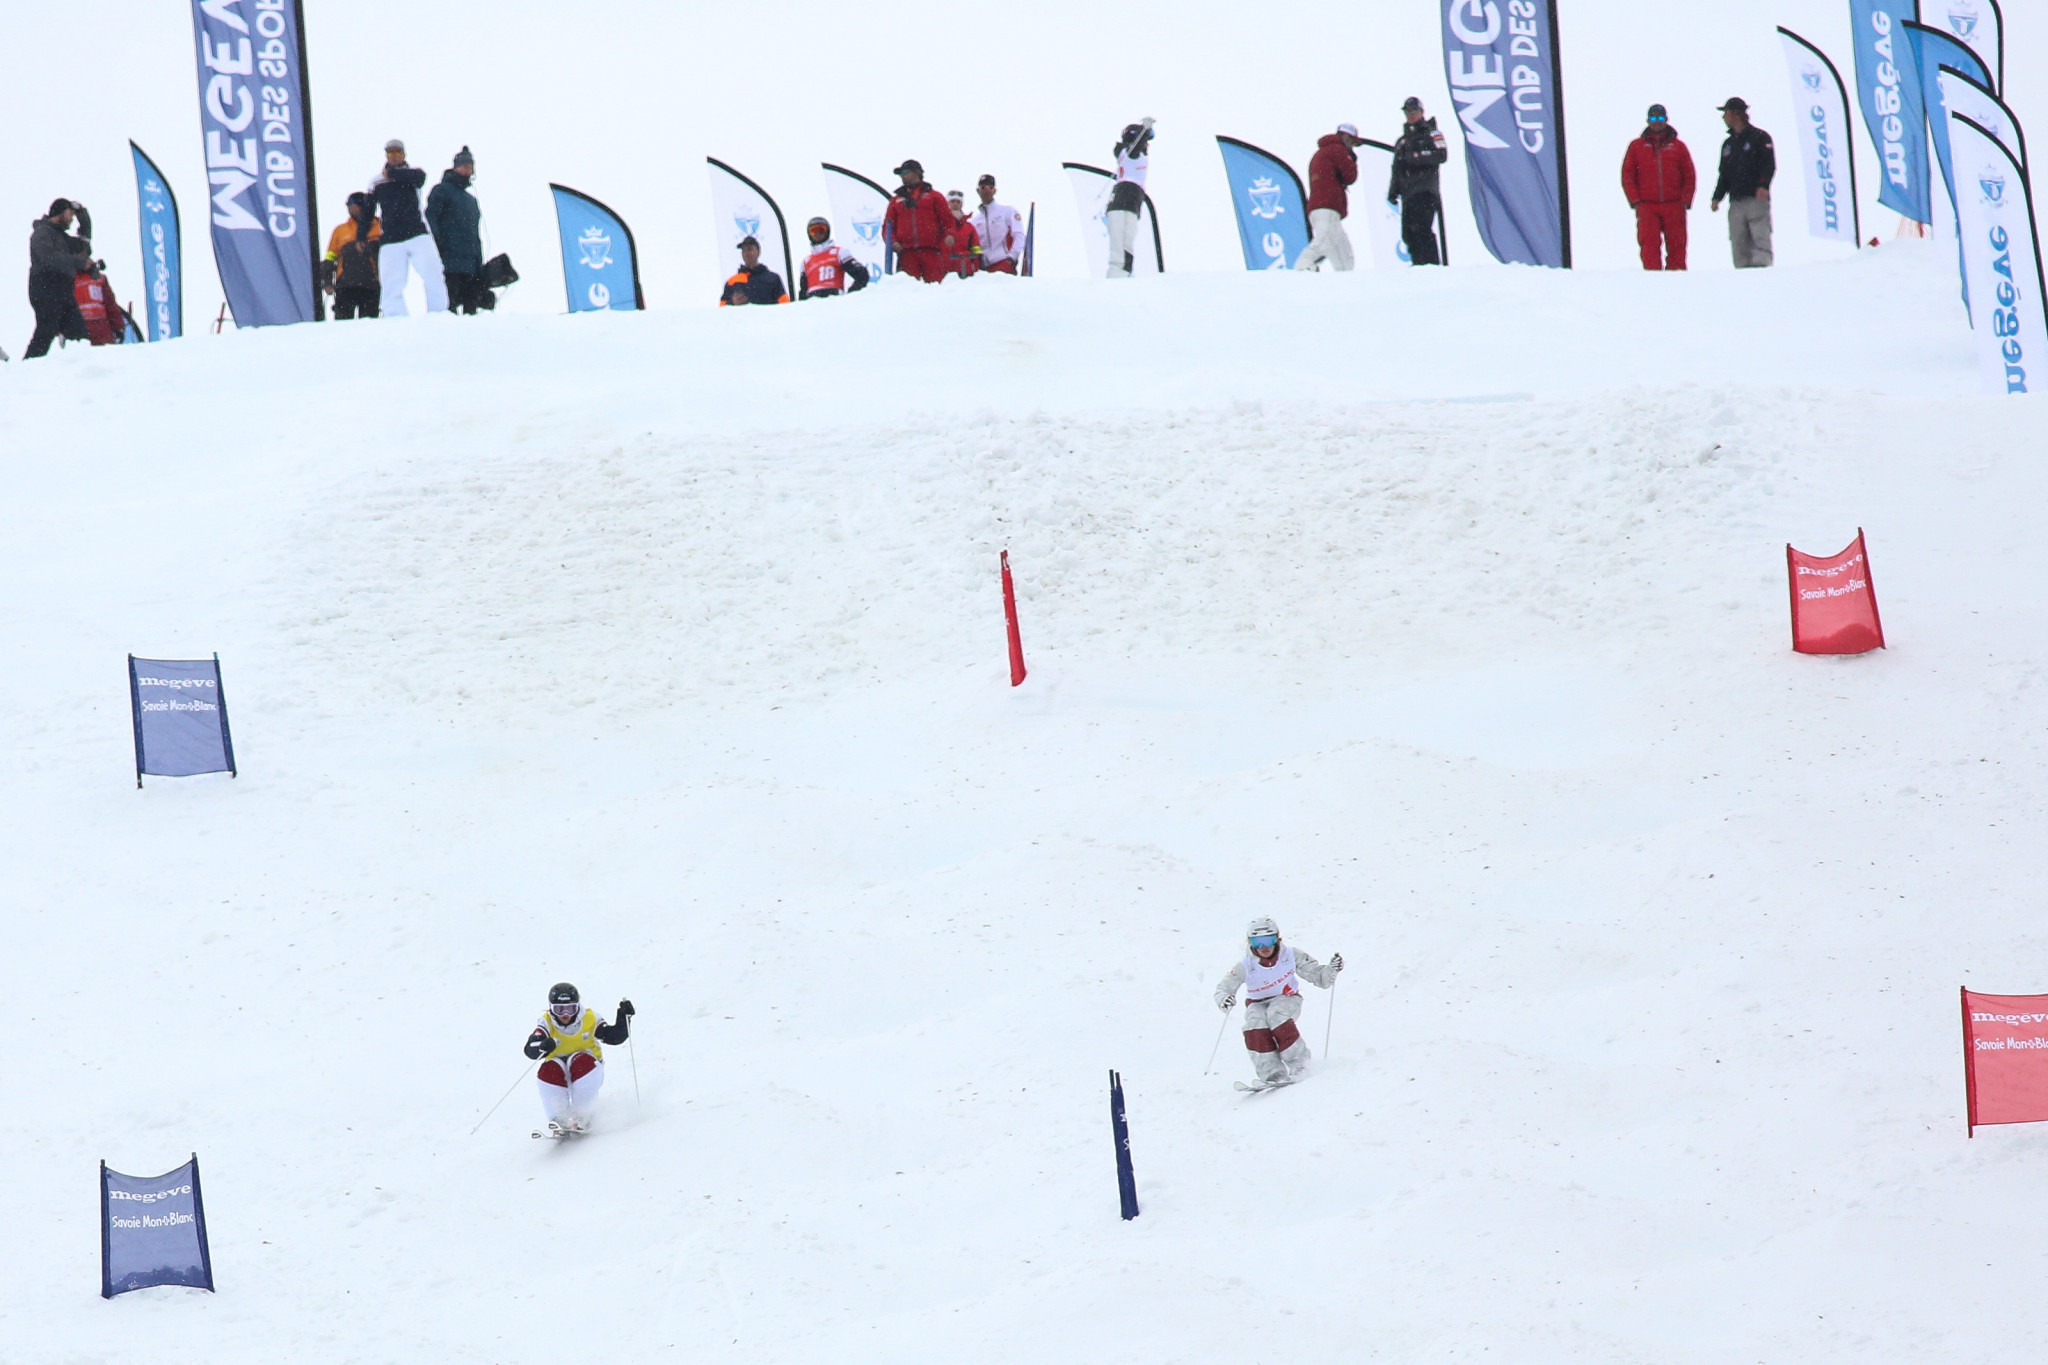 Laffont seals overall FIS World Cup moguls crown despite second place finish in Megève